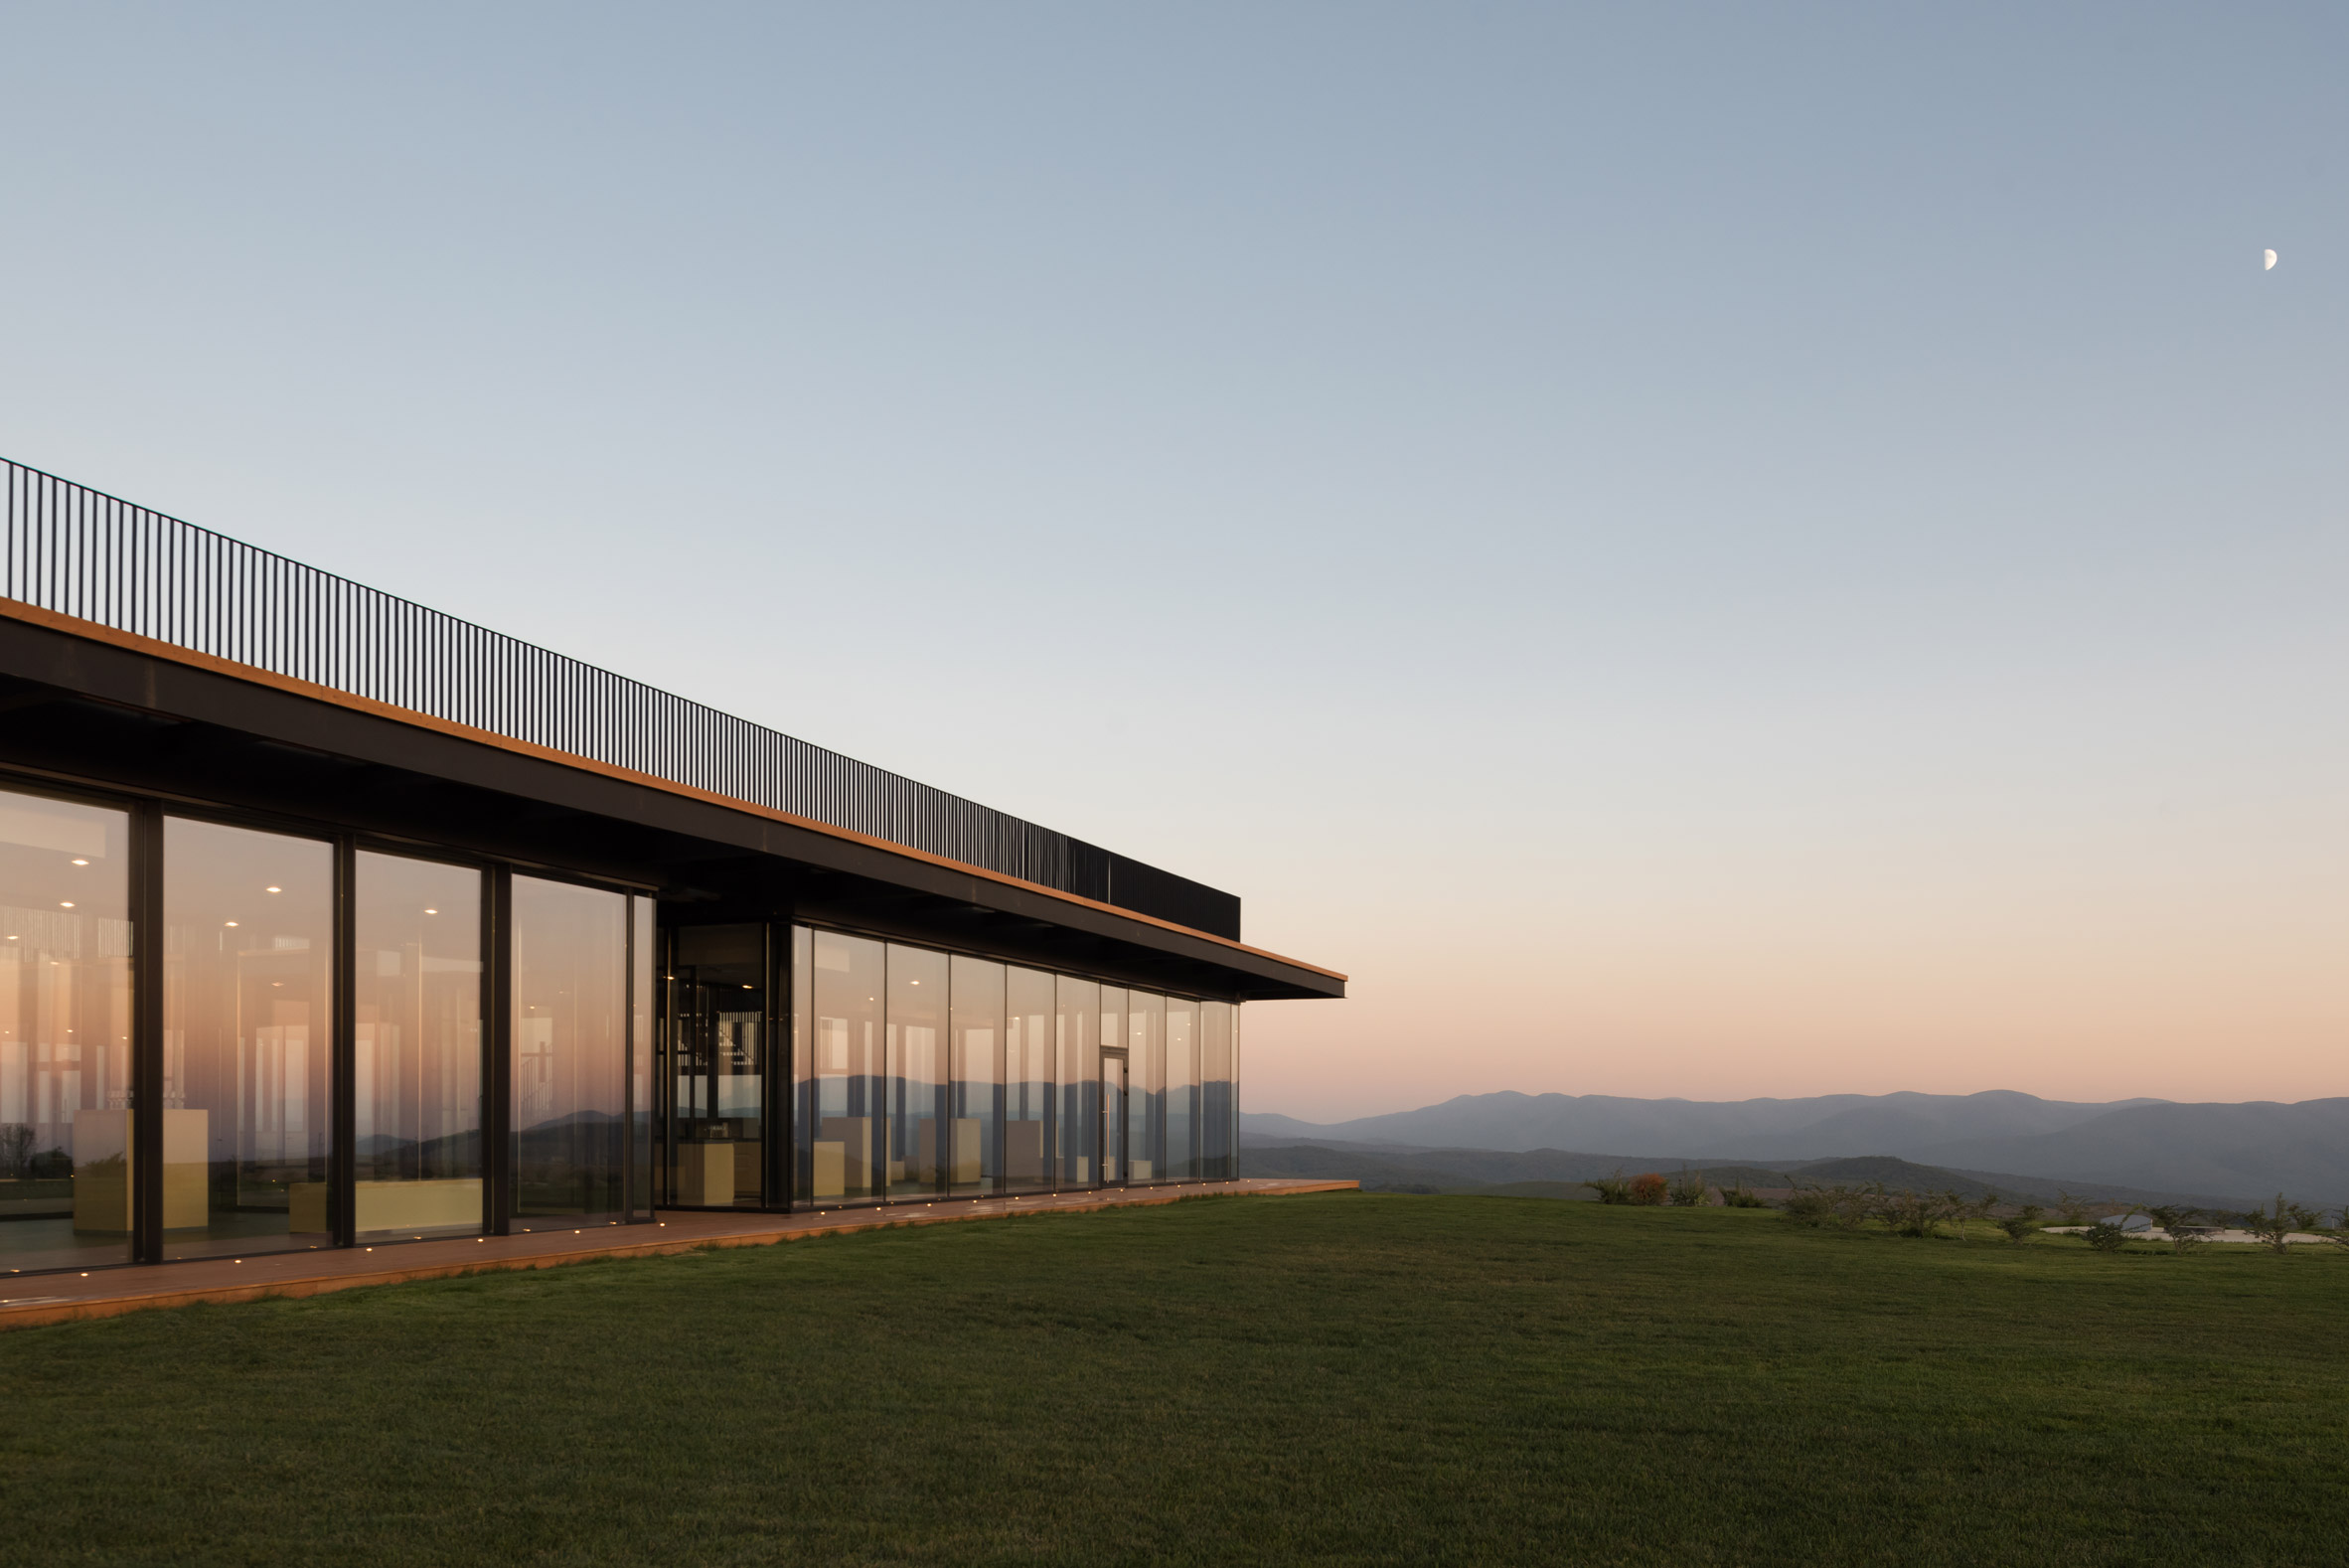 Gai-Kodzor Winery is a concrete and glass building perched on a hilltop in Russia